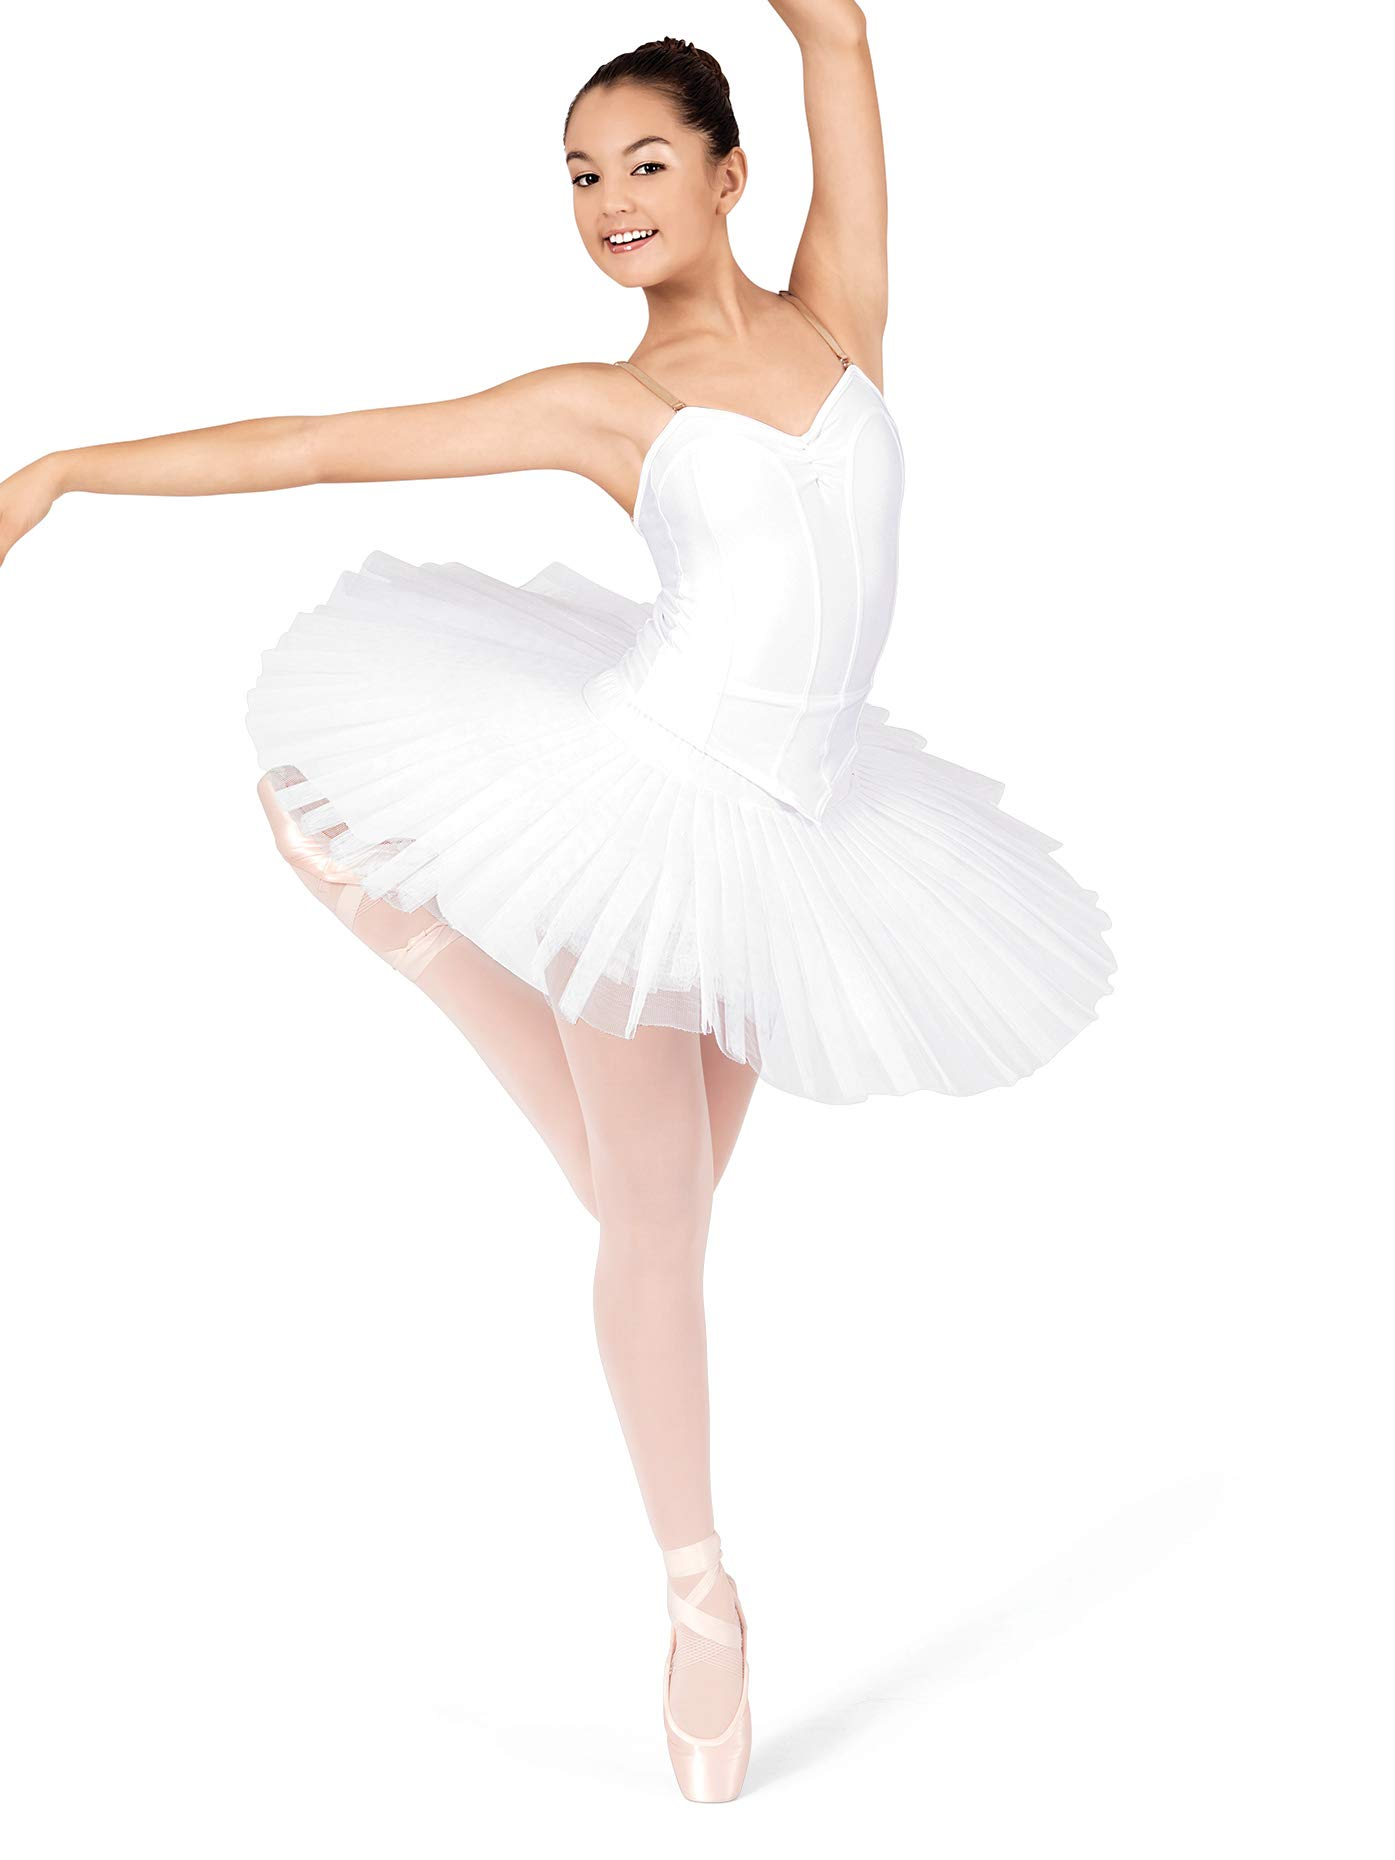 Natalie Dancewear Adult/Child Professional Tutu N5835WHTMLC White MLC by Natalie Dancewear